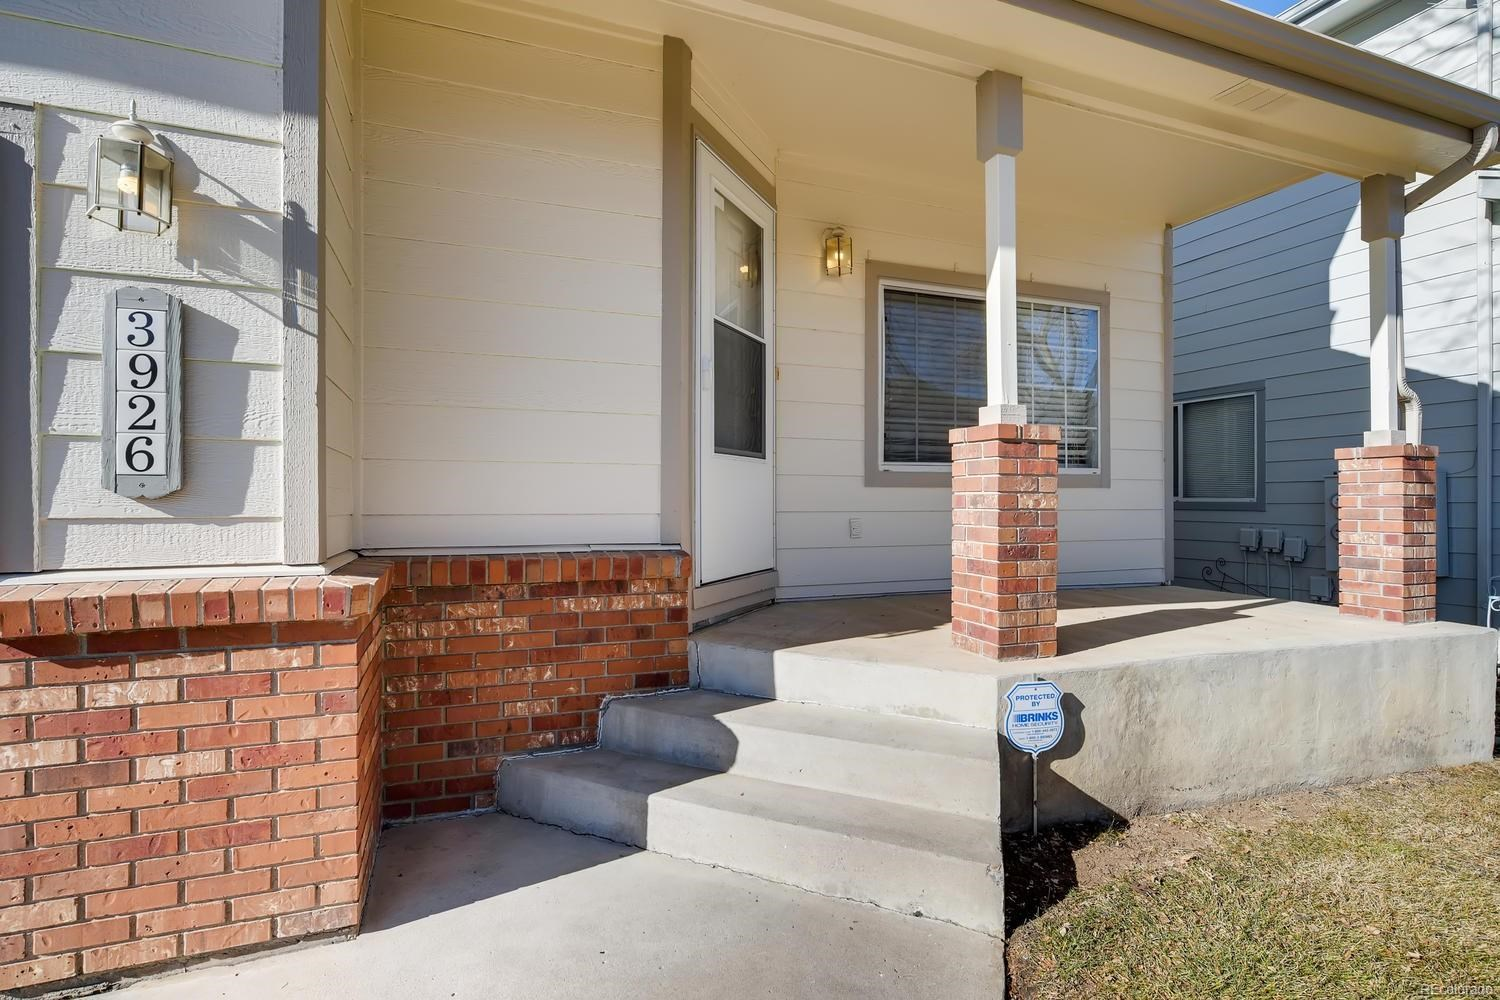 MLS# 7435178 - 4 - 3926 Christy Heights, Colorado Springs, CO 80906